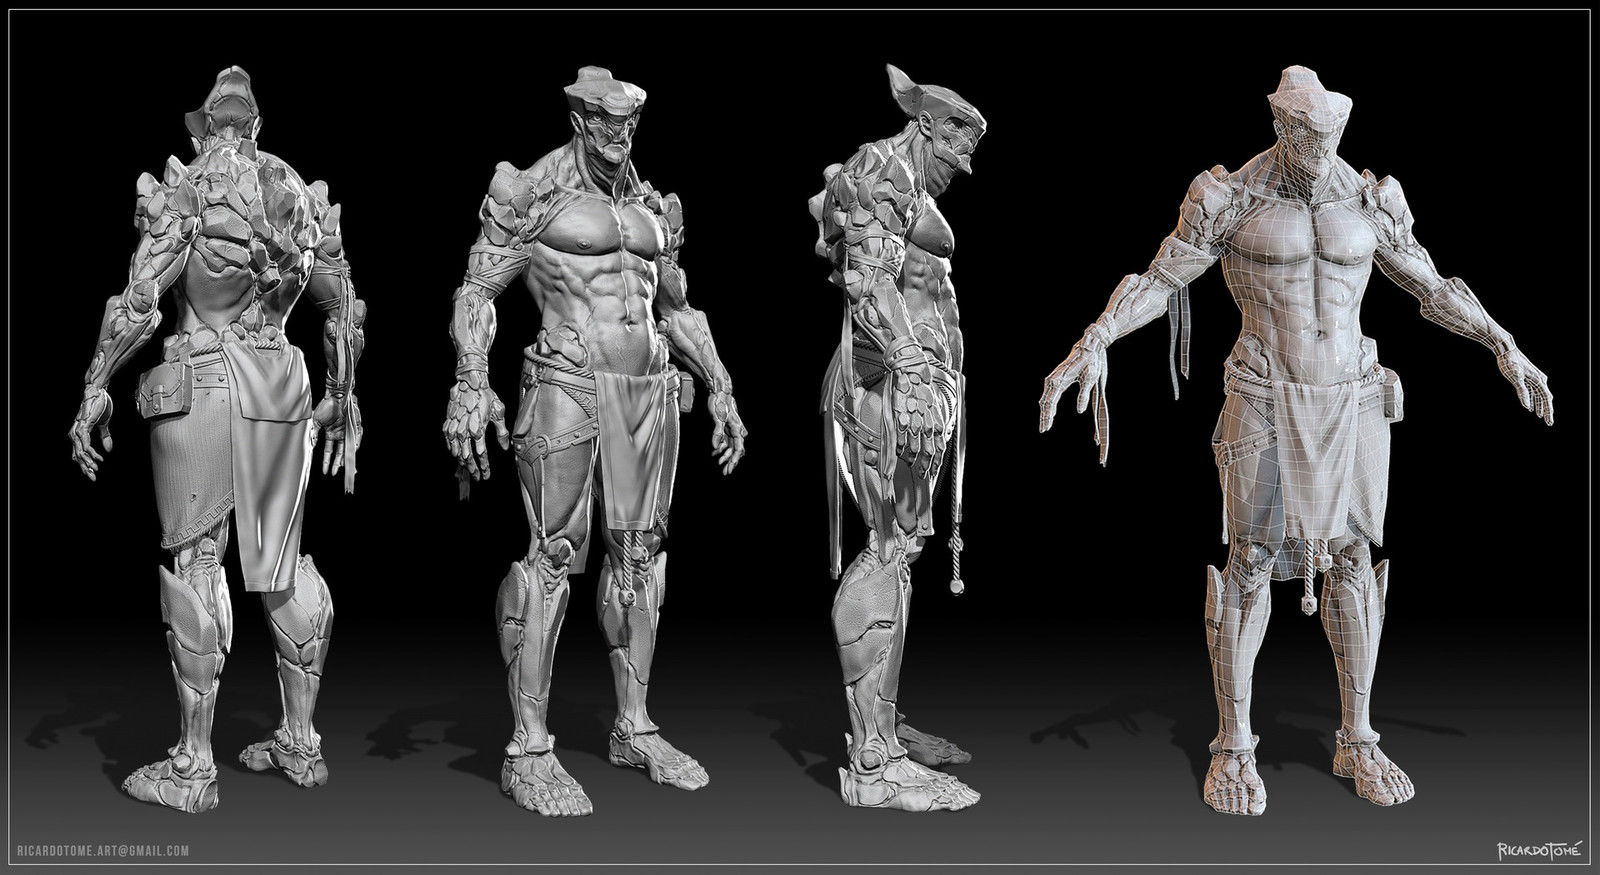 The Cleric - Concept and Production Model